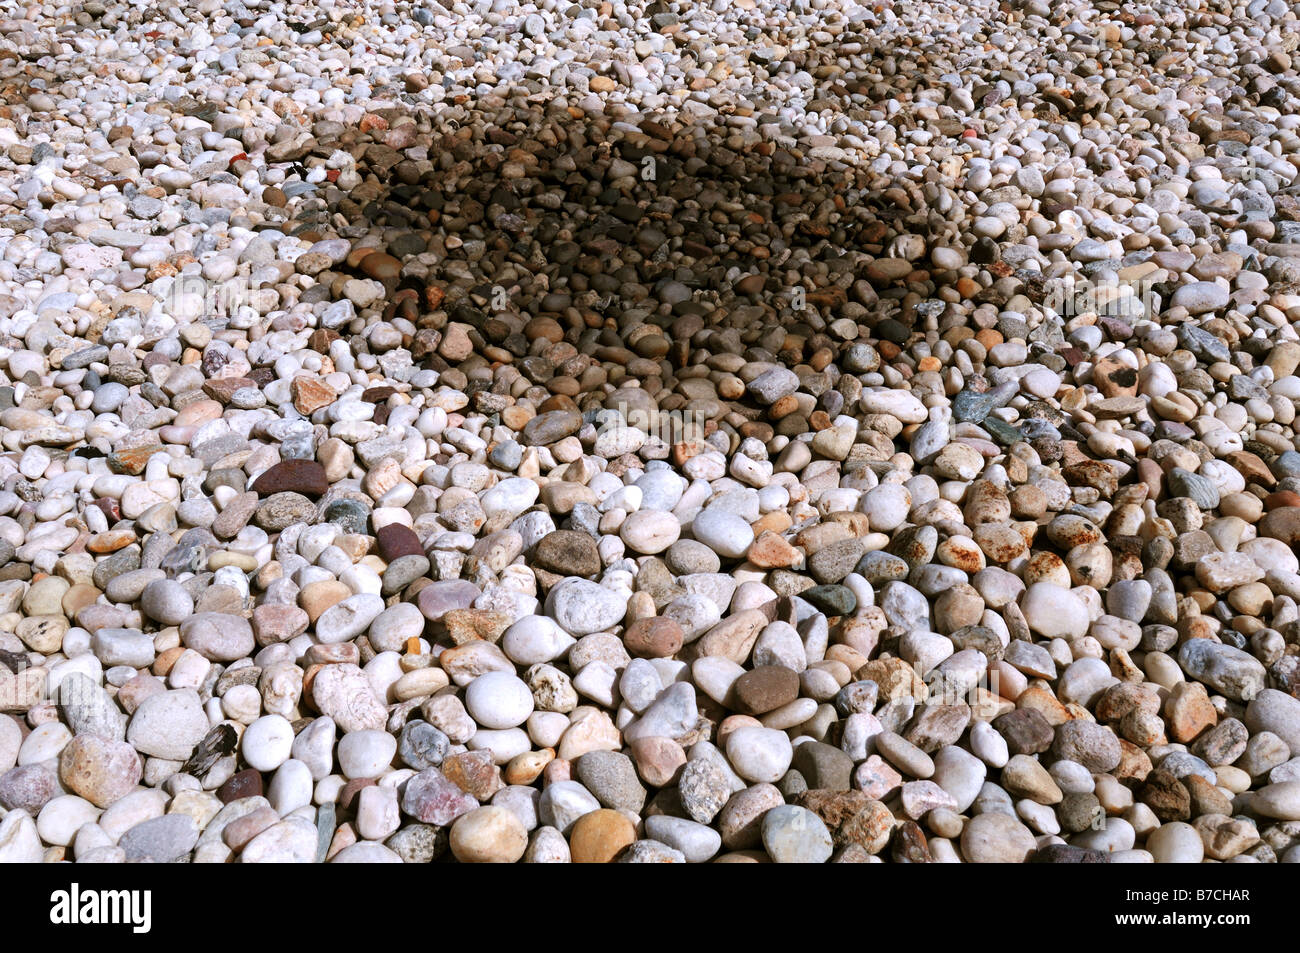 An oil patch on a surface of small rocks - Stock Image